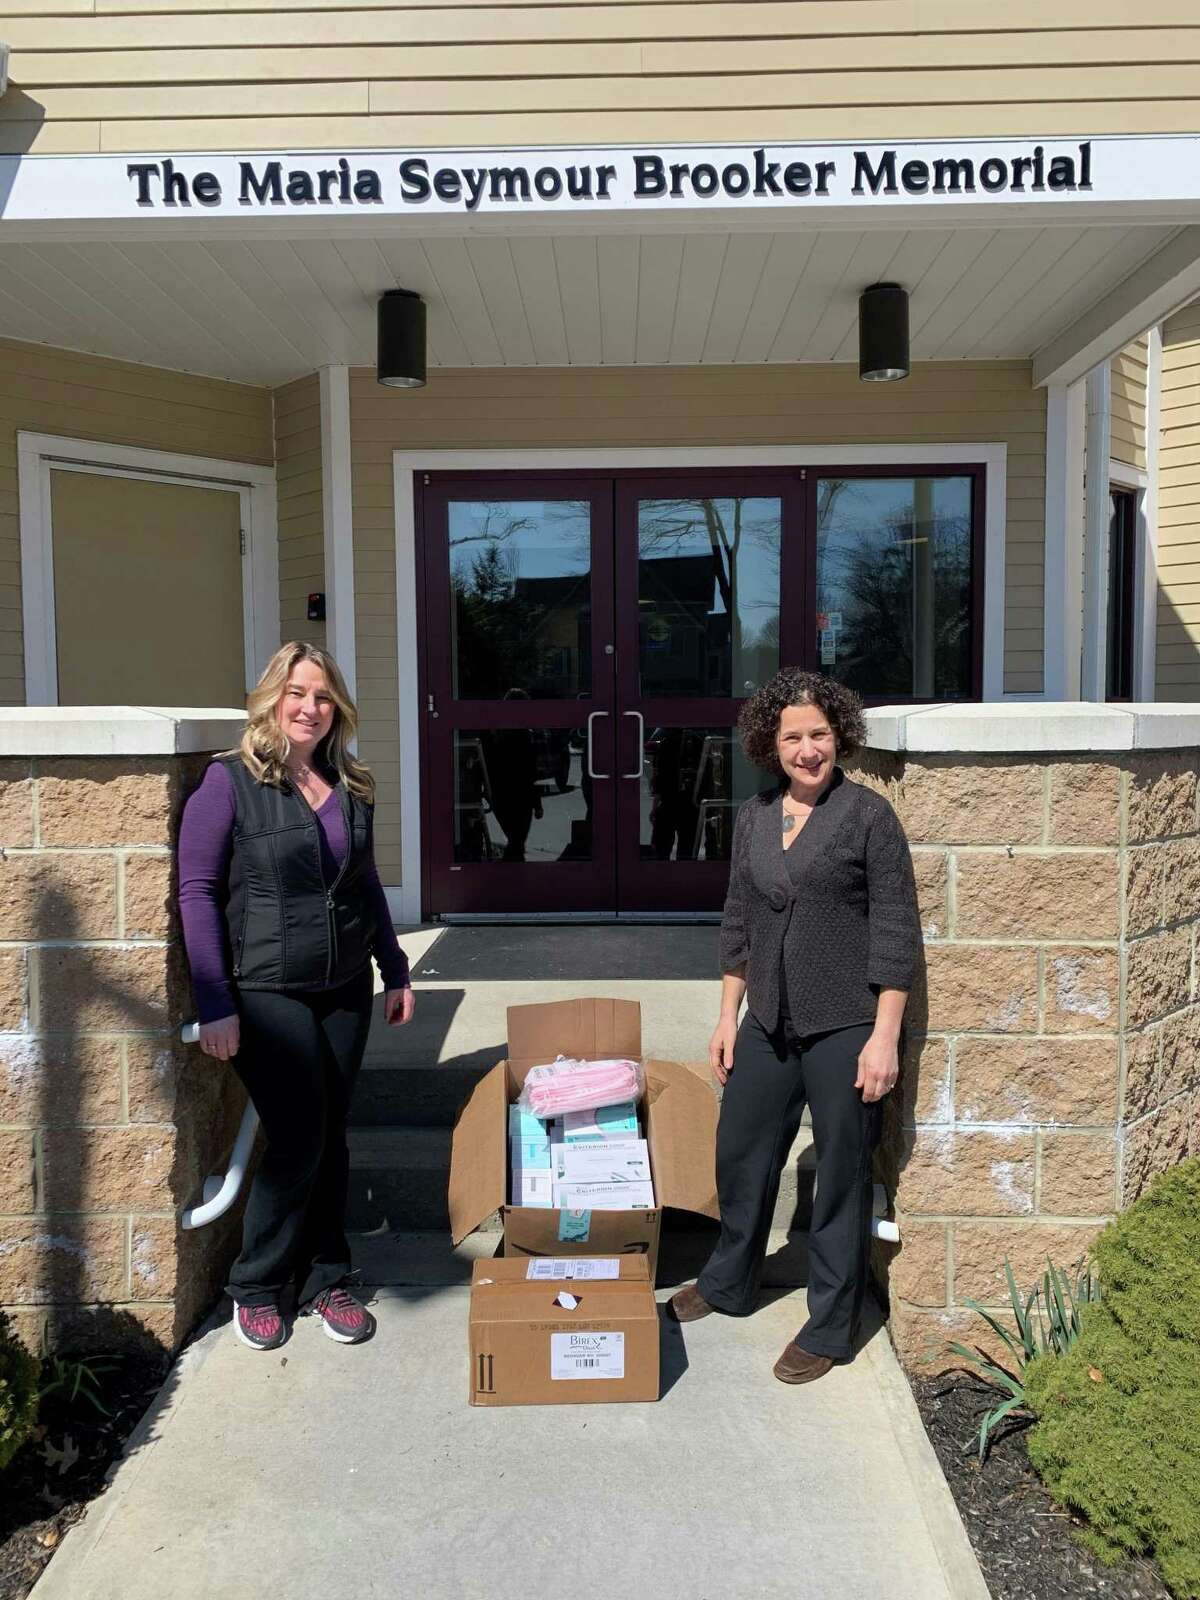 Brooker Memorial donated supplies to Charlotte Hungerford Hospital. Lisa Ferris, program manager, and Cathy Coyle, executive director, show boxes of supplies to be donated.